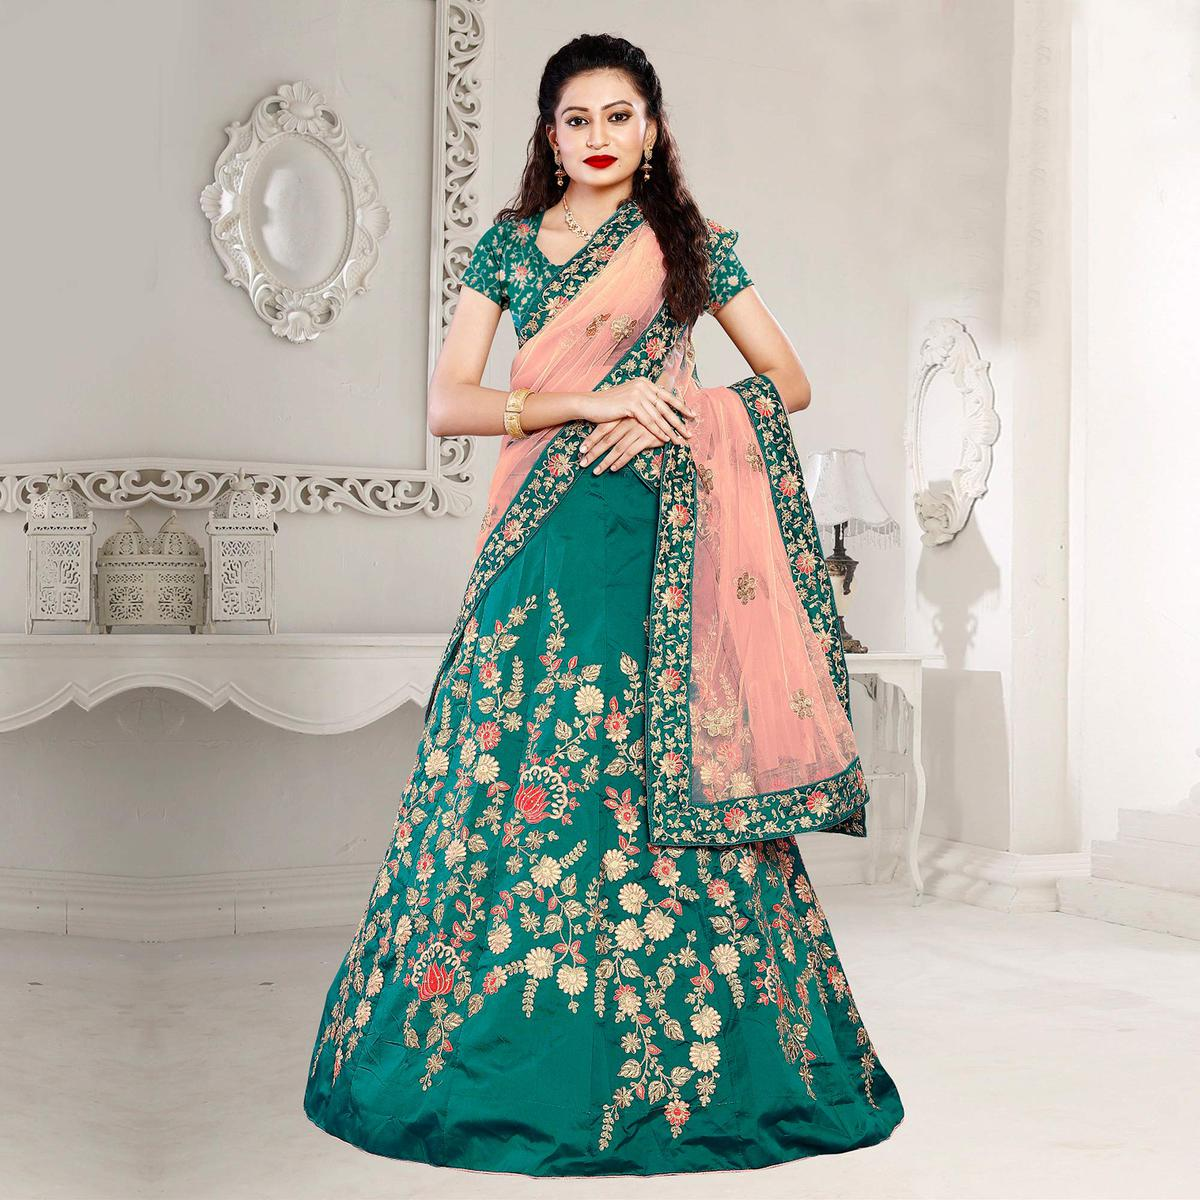 Dazzling Green Embroidered Festive Wear Tapetta Silk Lehenga Choli